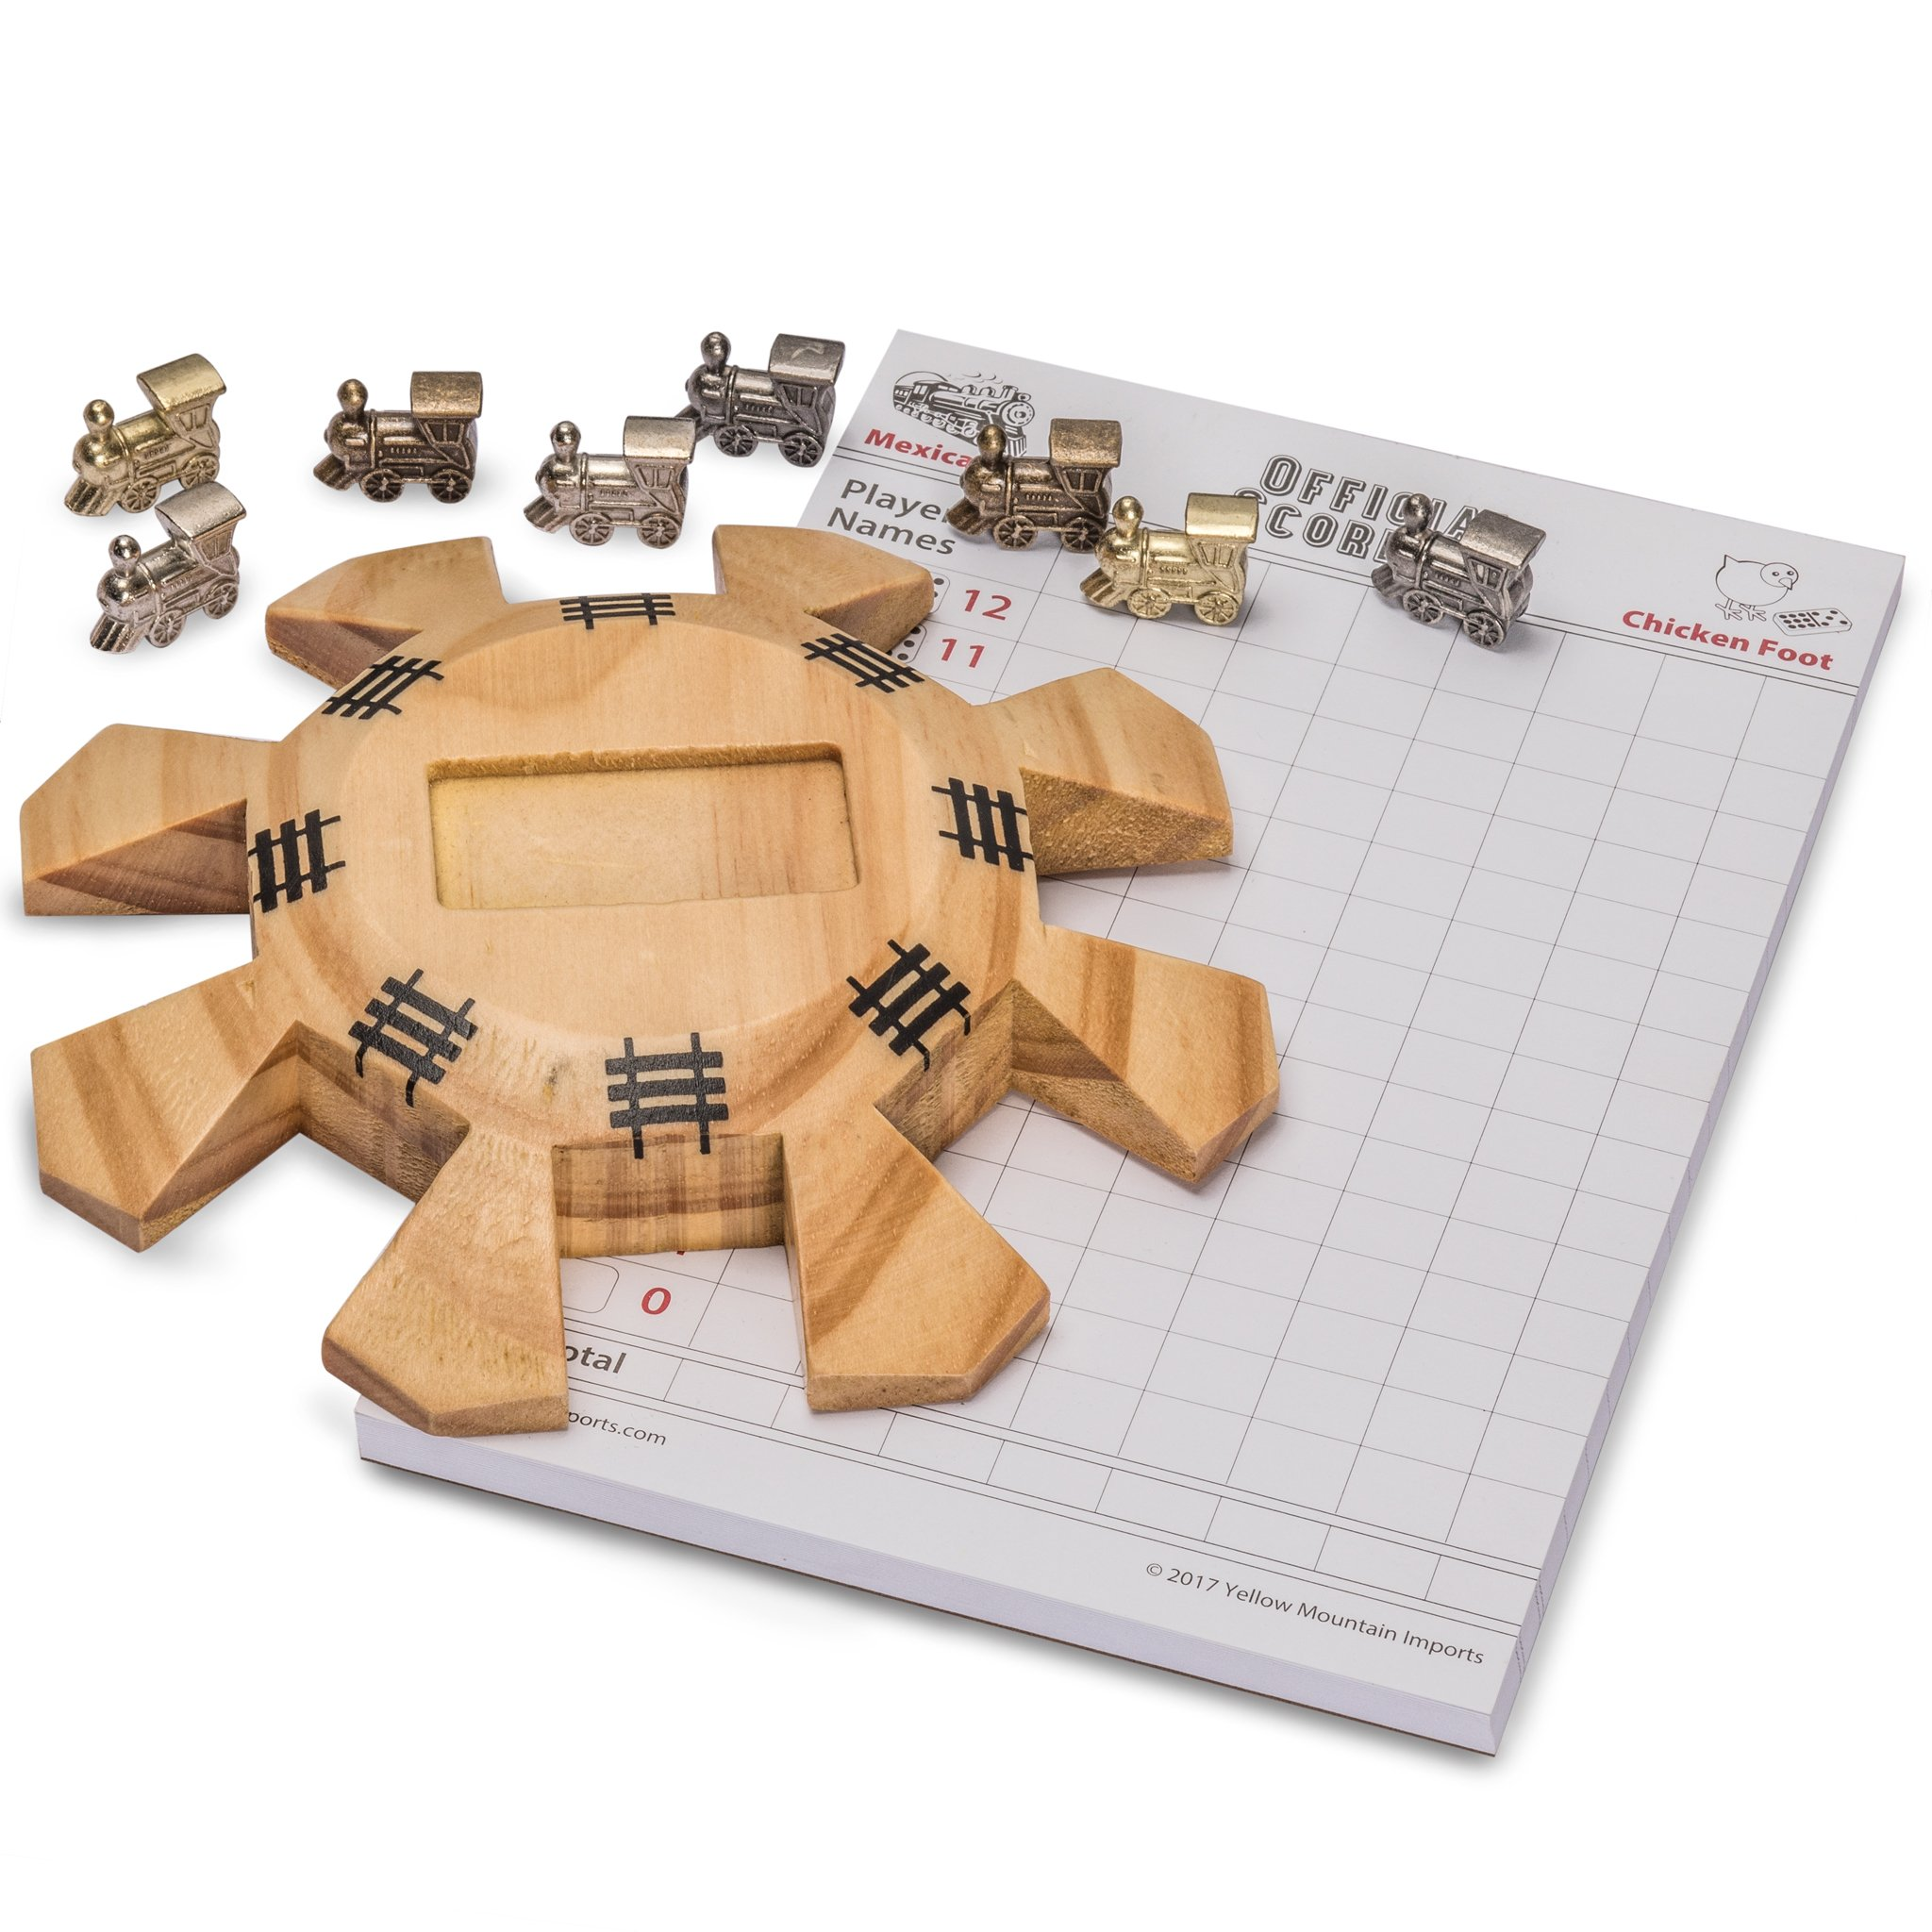 Yellow Mountain Imports Dominoes Accessory Set (Mexican Train Dominoes) - Includes Wooden Hub Centerpiece and Metal Train Markers by Yellow Mountain Imports